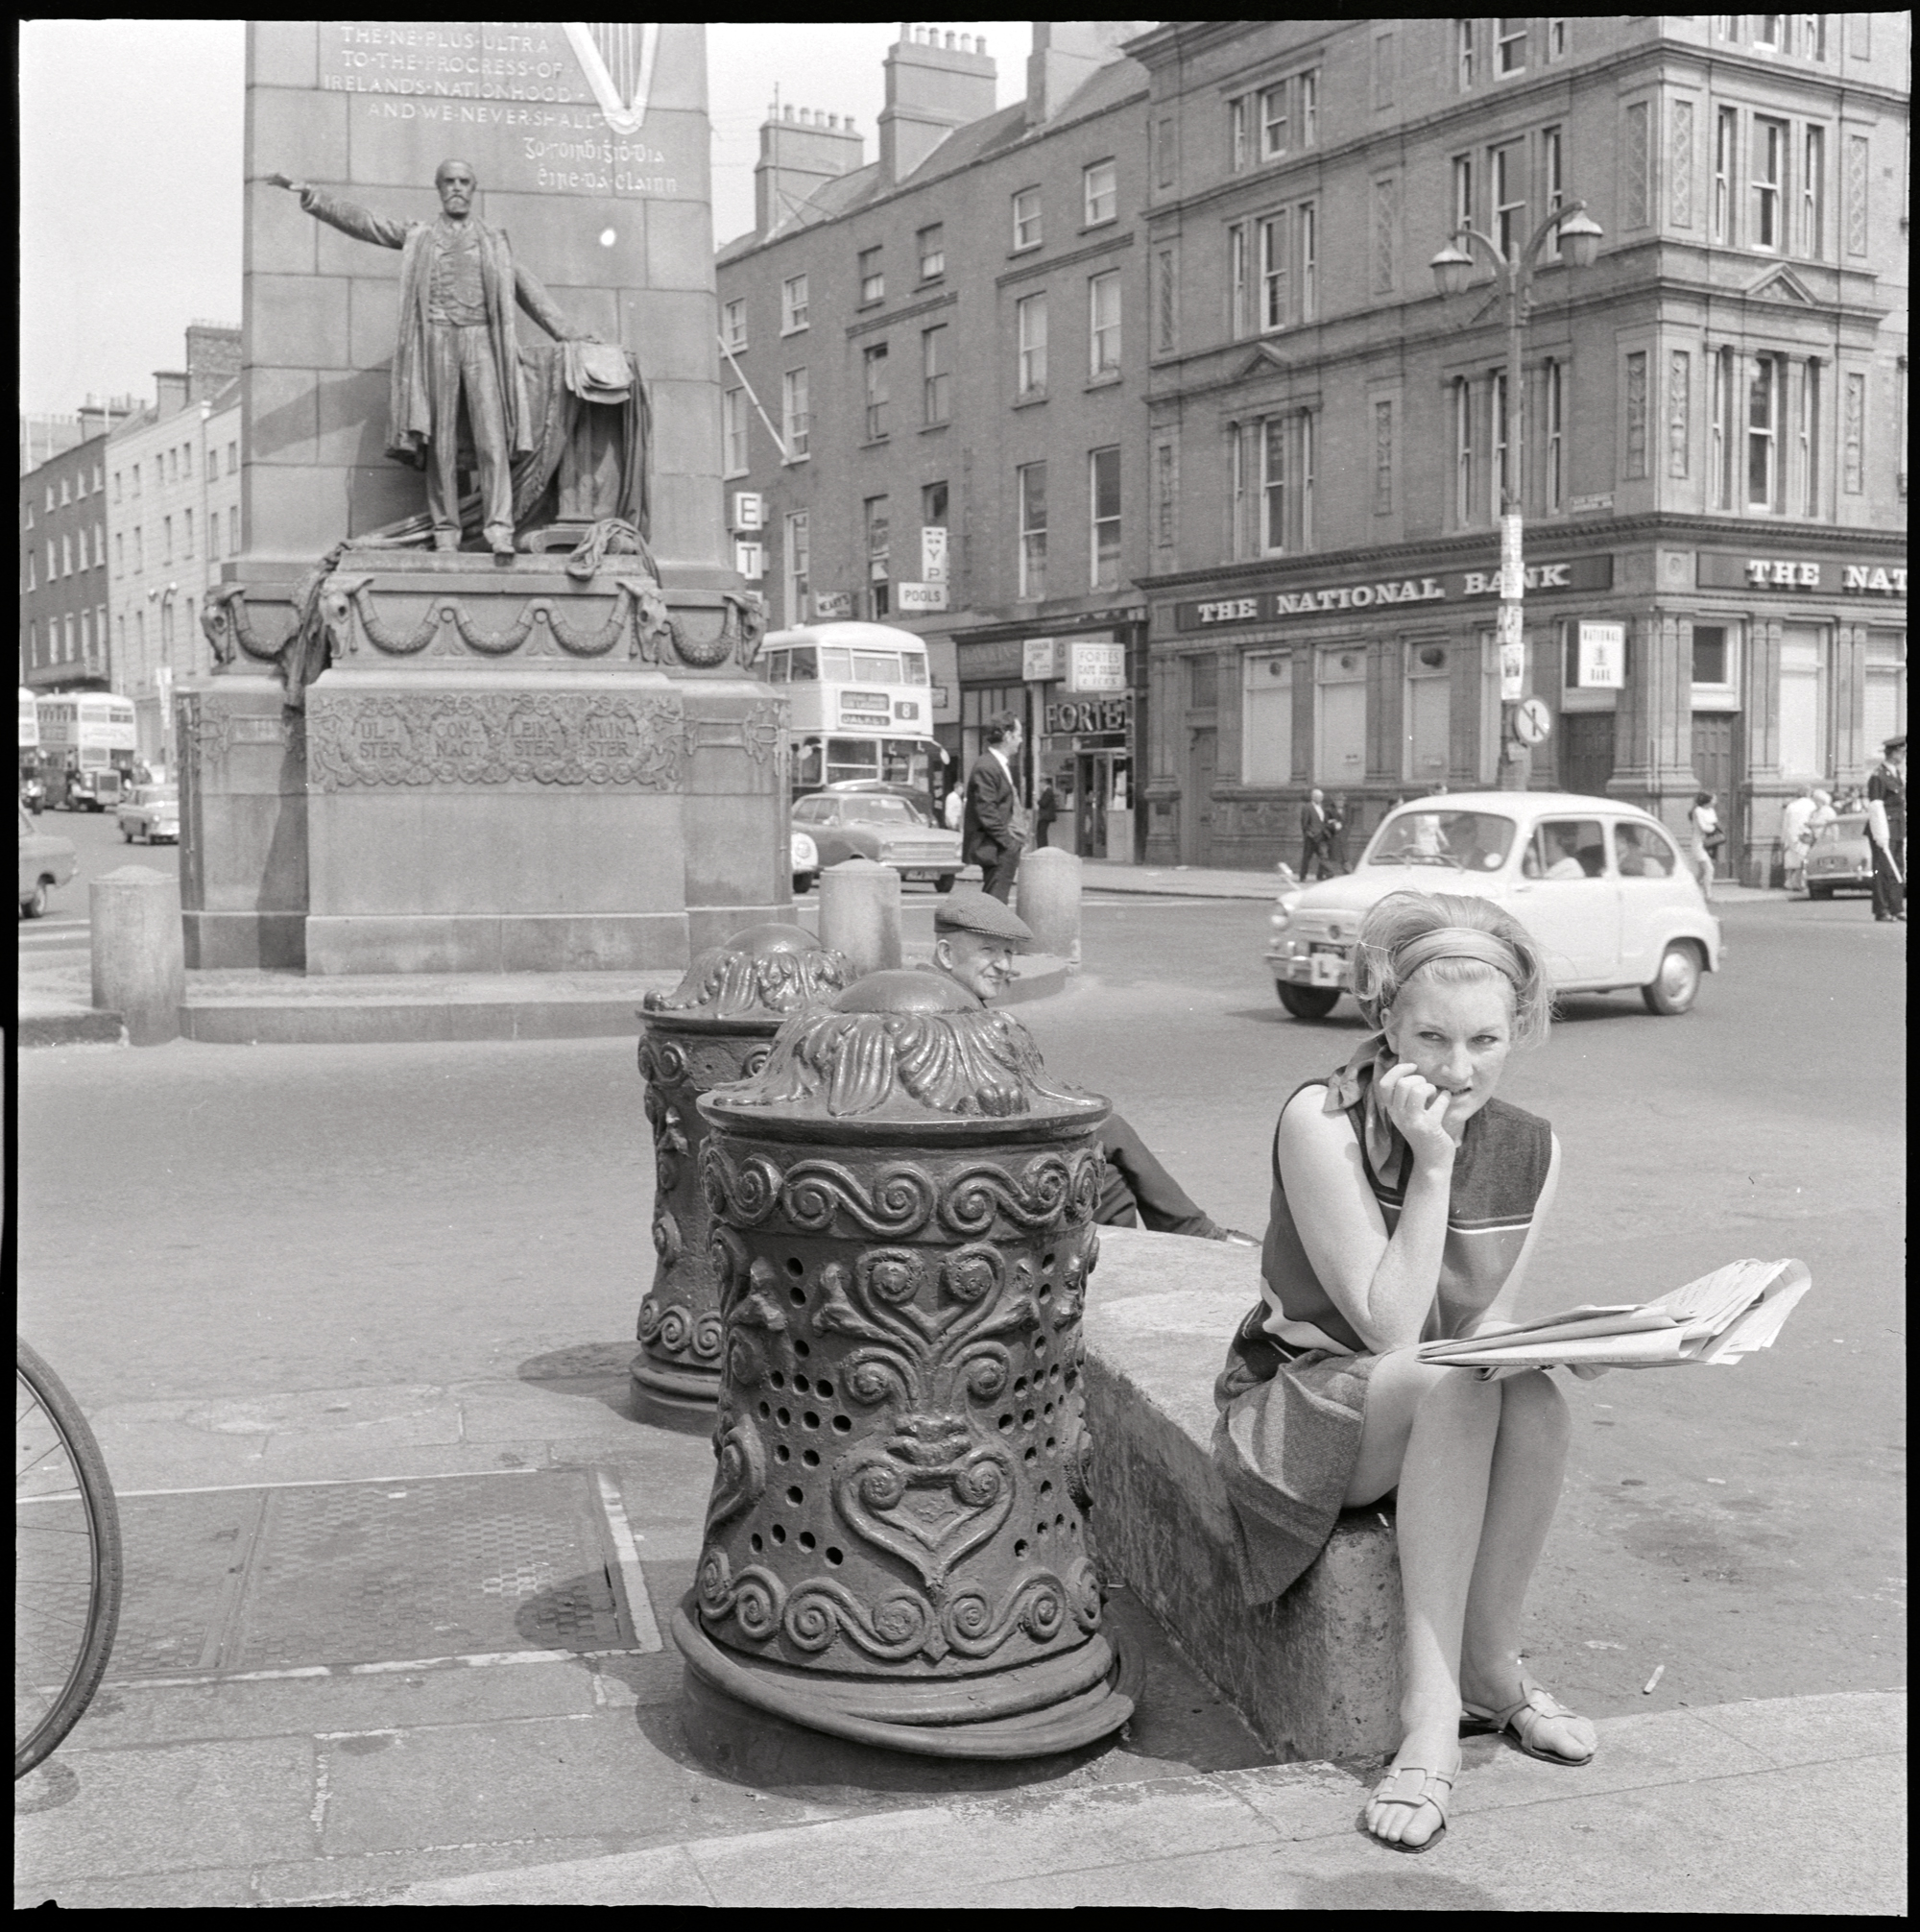 Ireland 1960s. We didn't have a very precise date for this photo, but those election posters on the lamp post outside the National Bank helped us to narrow down the date from some time in 1969 to June or July 1969.